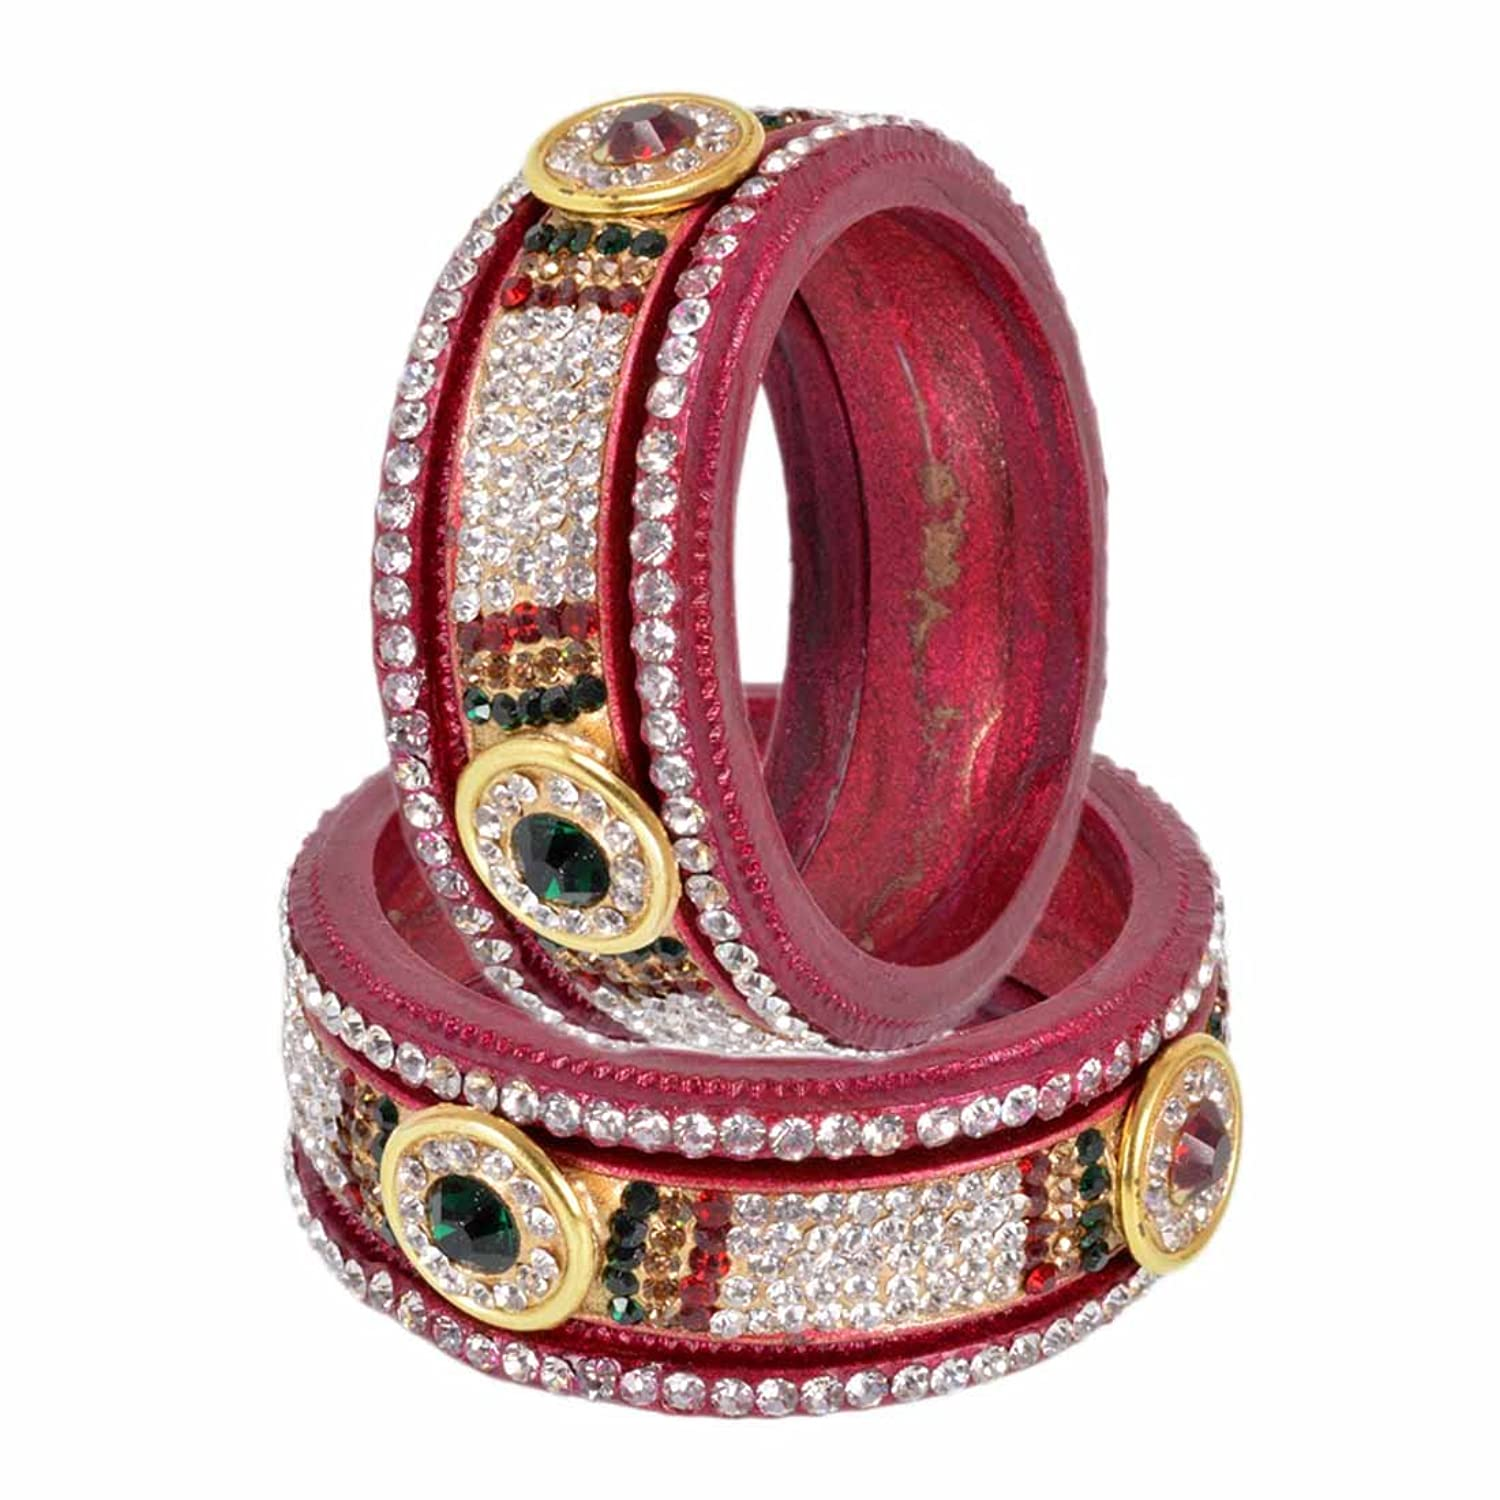 Rajasthani Lac Jewellery Rajasthani Lac Maroon Color Bangles Set For Woman